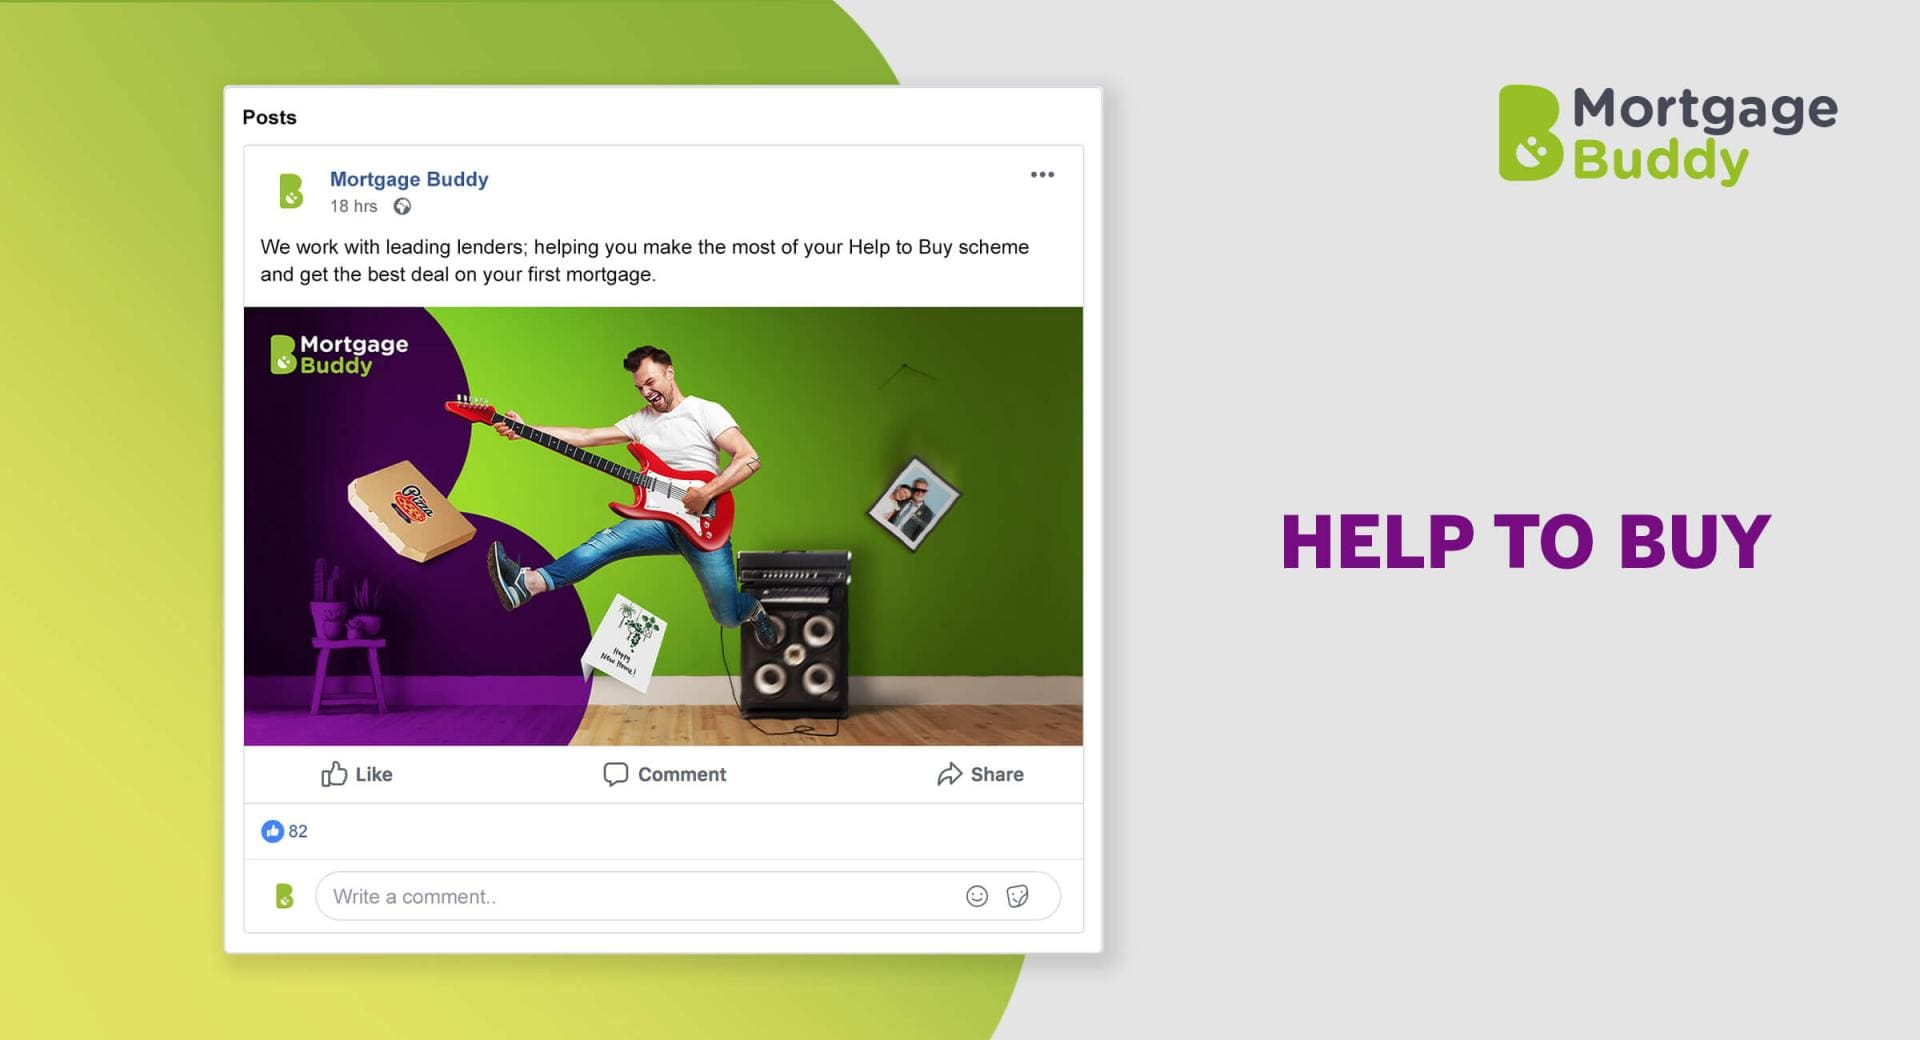 Facebook advertisement showing a Man playing guitar, jumping in the air, and a pizza box, photograph of elderly people, and New Home Card flying around the room